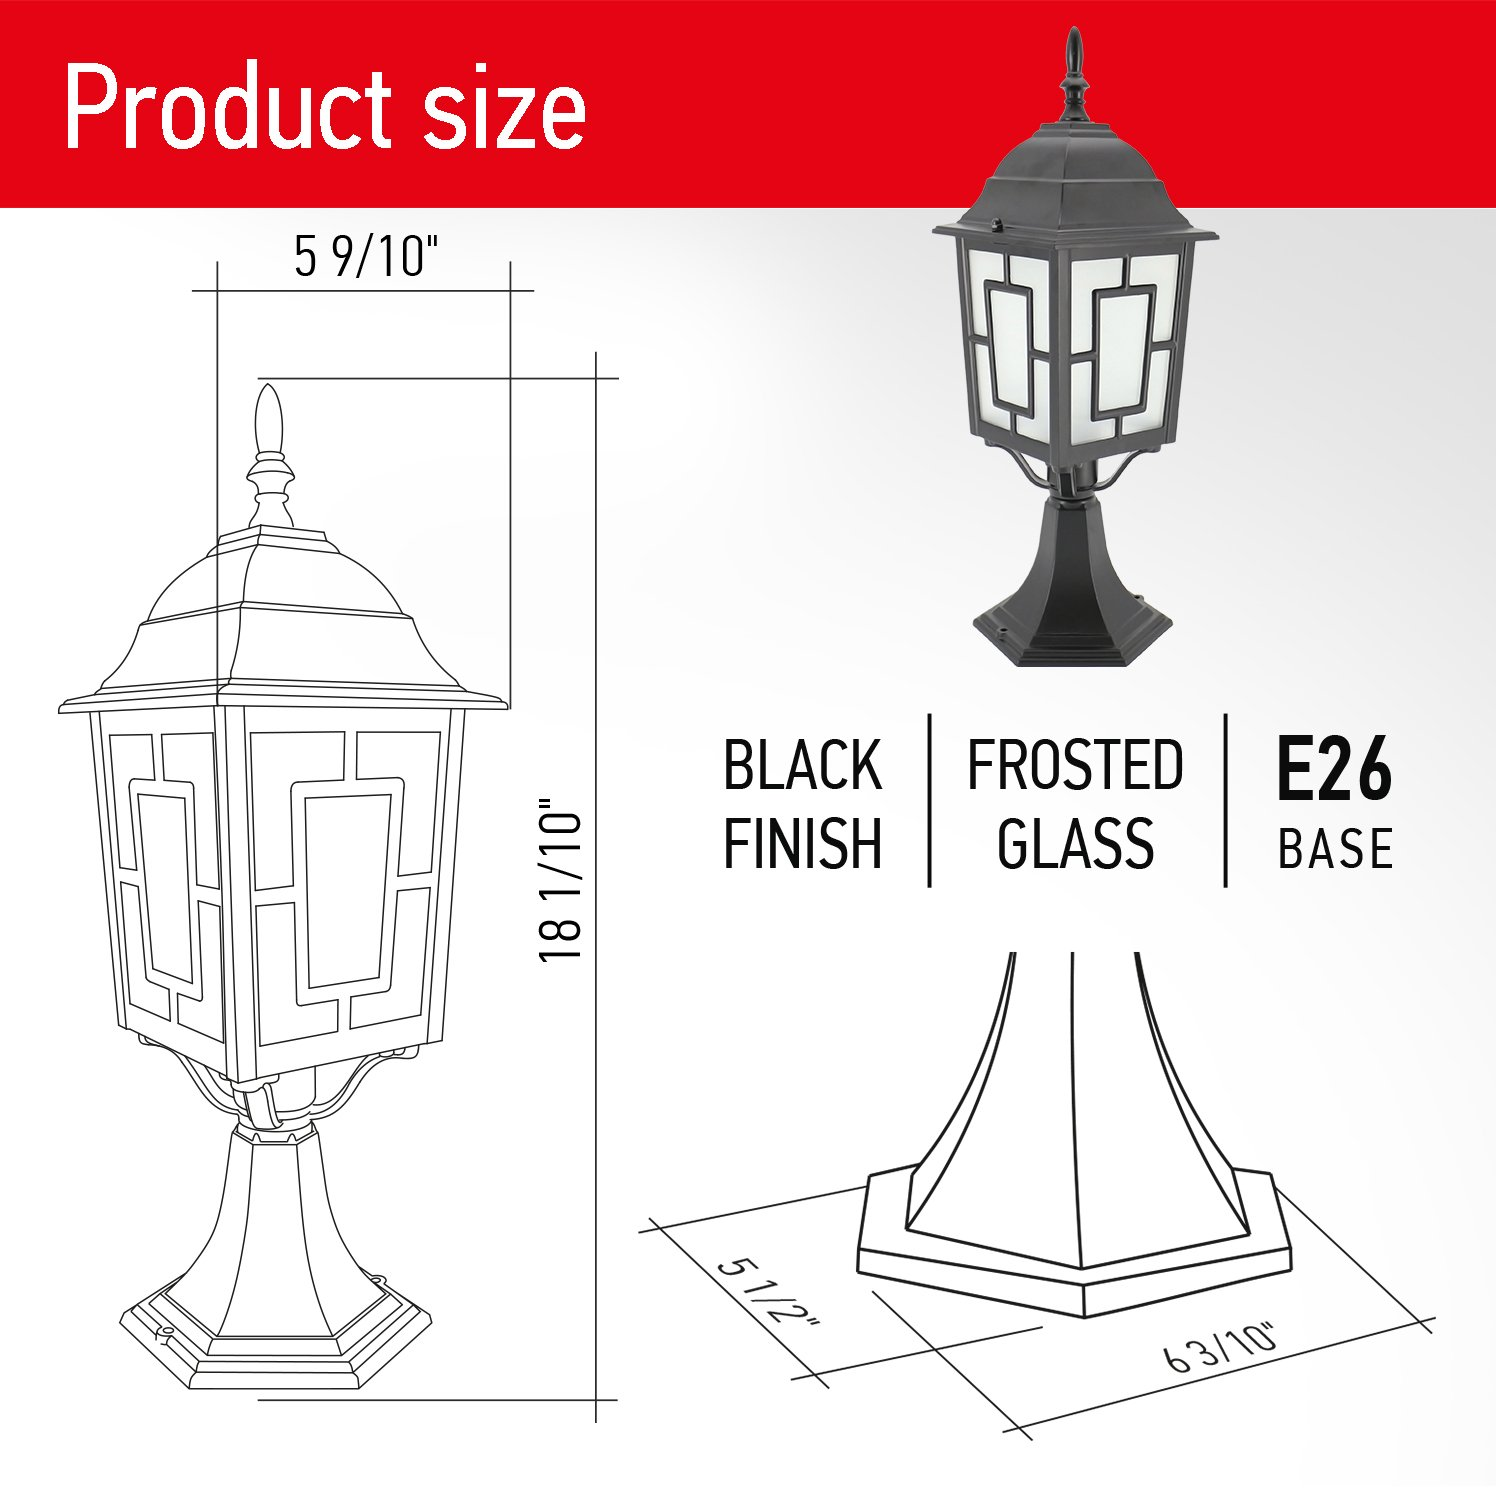 IN HOME 1-Light Outdoor Garden Post Lantern L05 Lighting Fixture, Traditional Post Lamp Patio with One E26 Base, Water-Proof, Black Cast Aluminum Housing, Frosted Glass Panels, (2 Pack) ETL Listed by IN HOME (Image #4)